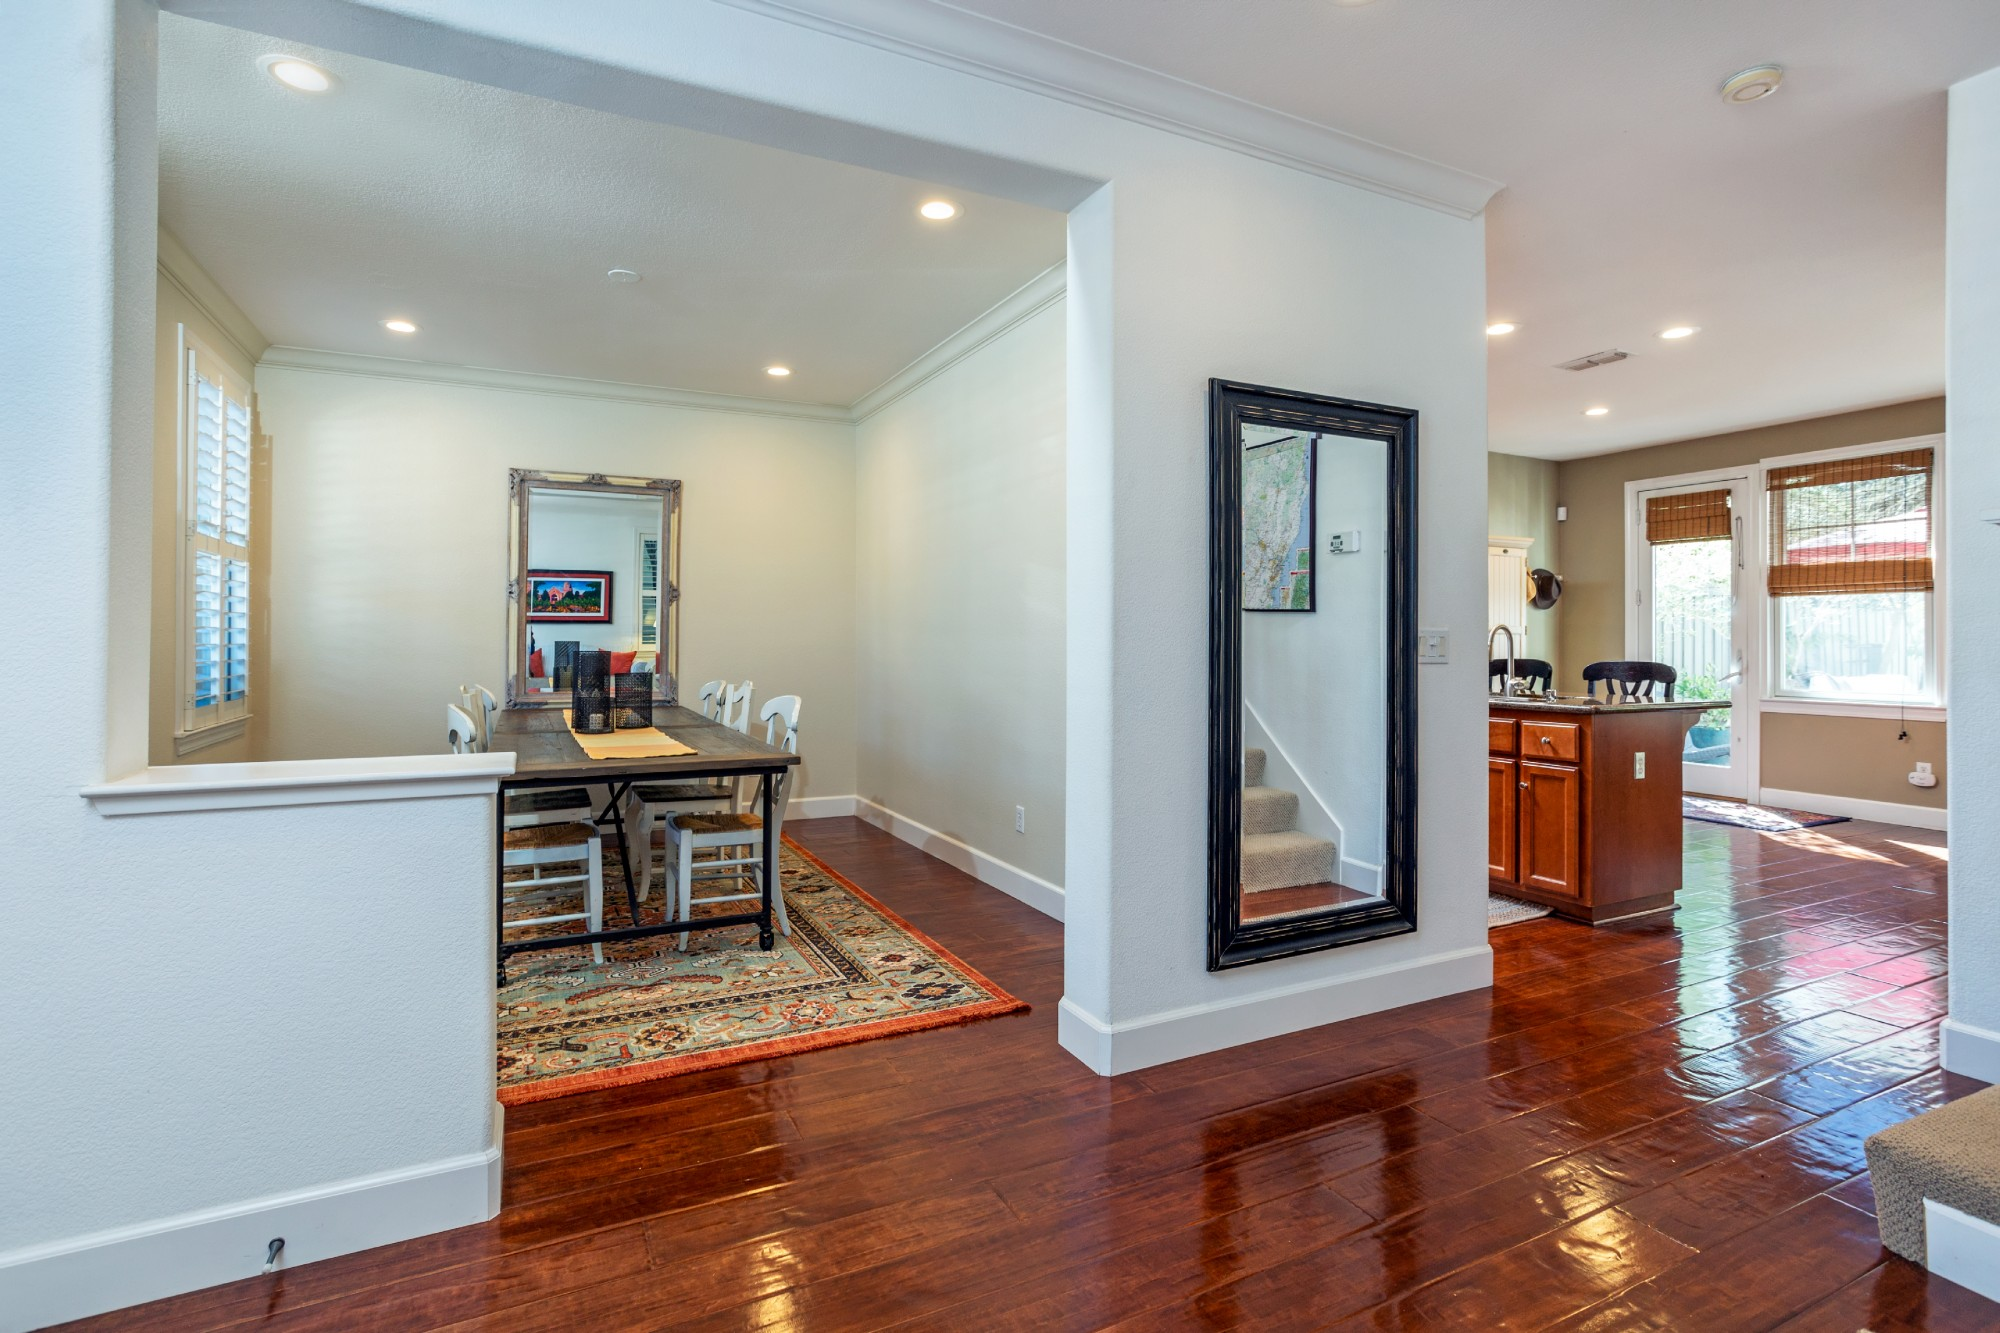 The gleaming wood floors lead into the formal part of the home, and there is a half-bath on this level as well